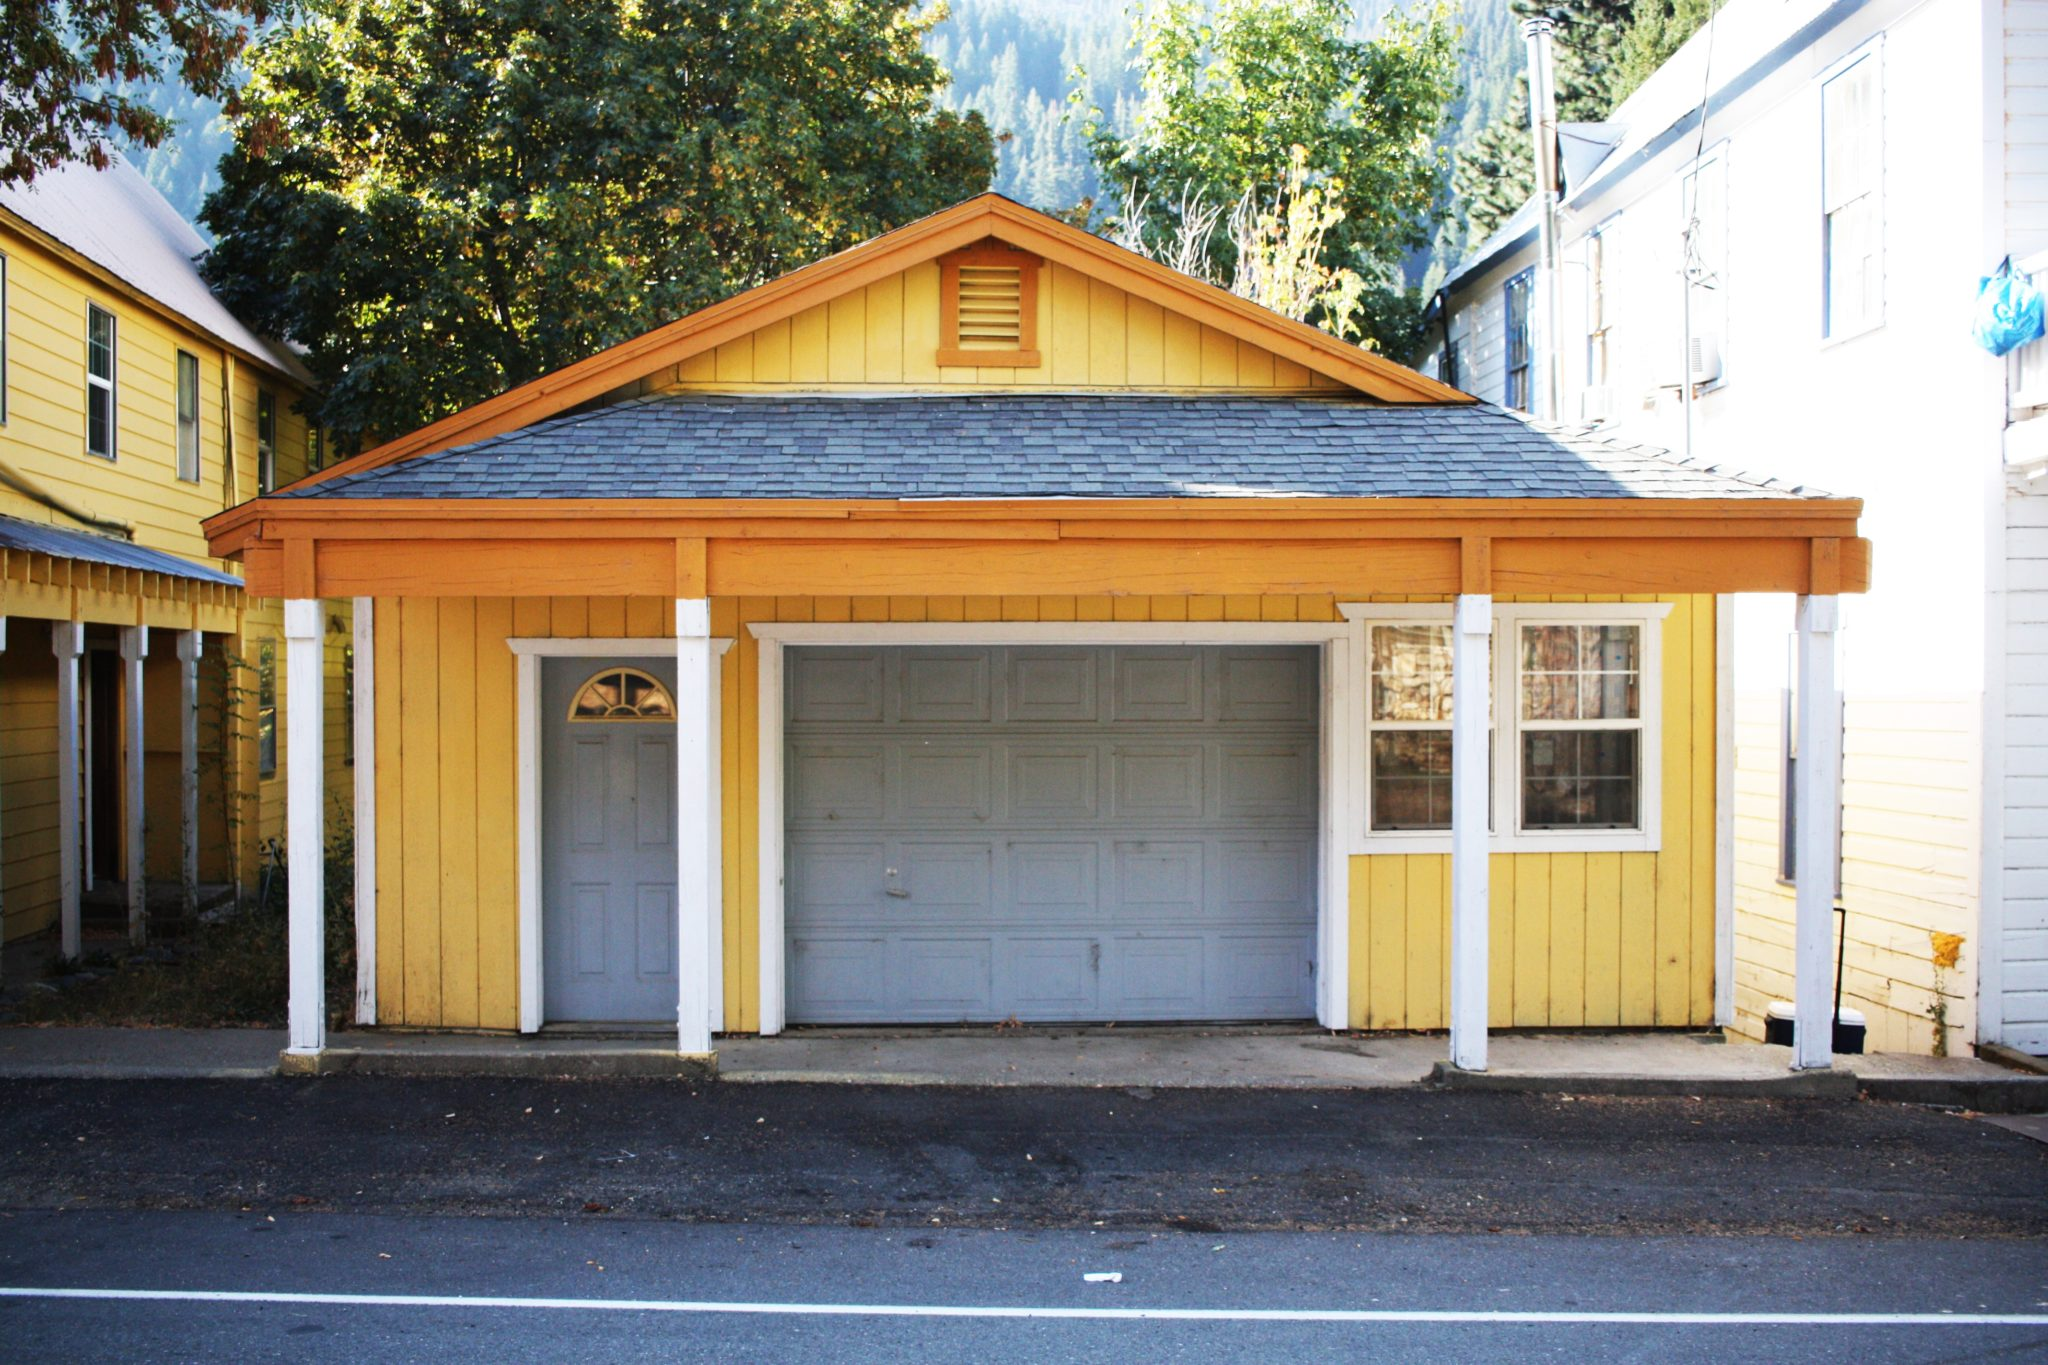 yellow and blue cute home garage conversion custom ideas and architecture